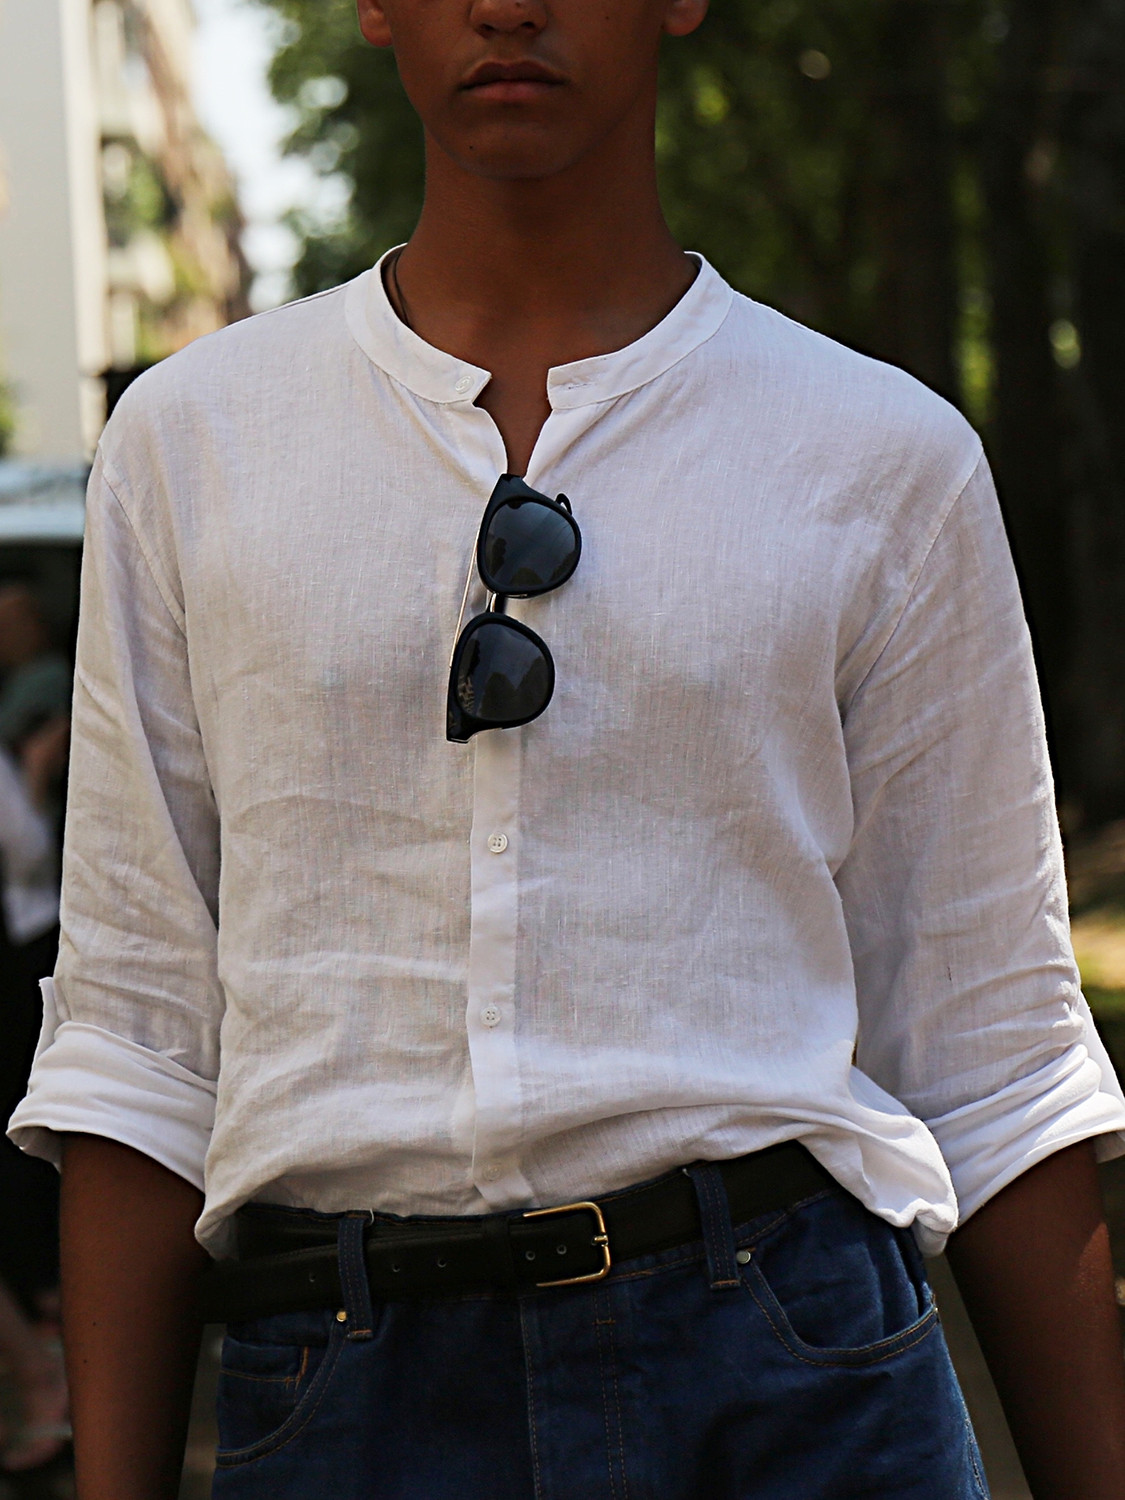 Men's outfit idea for 2021 with white linen shirt, dark blue jeans. Suitable for spring and summer.